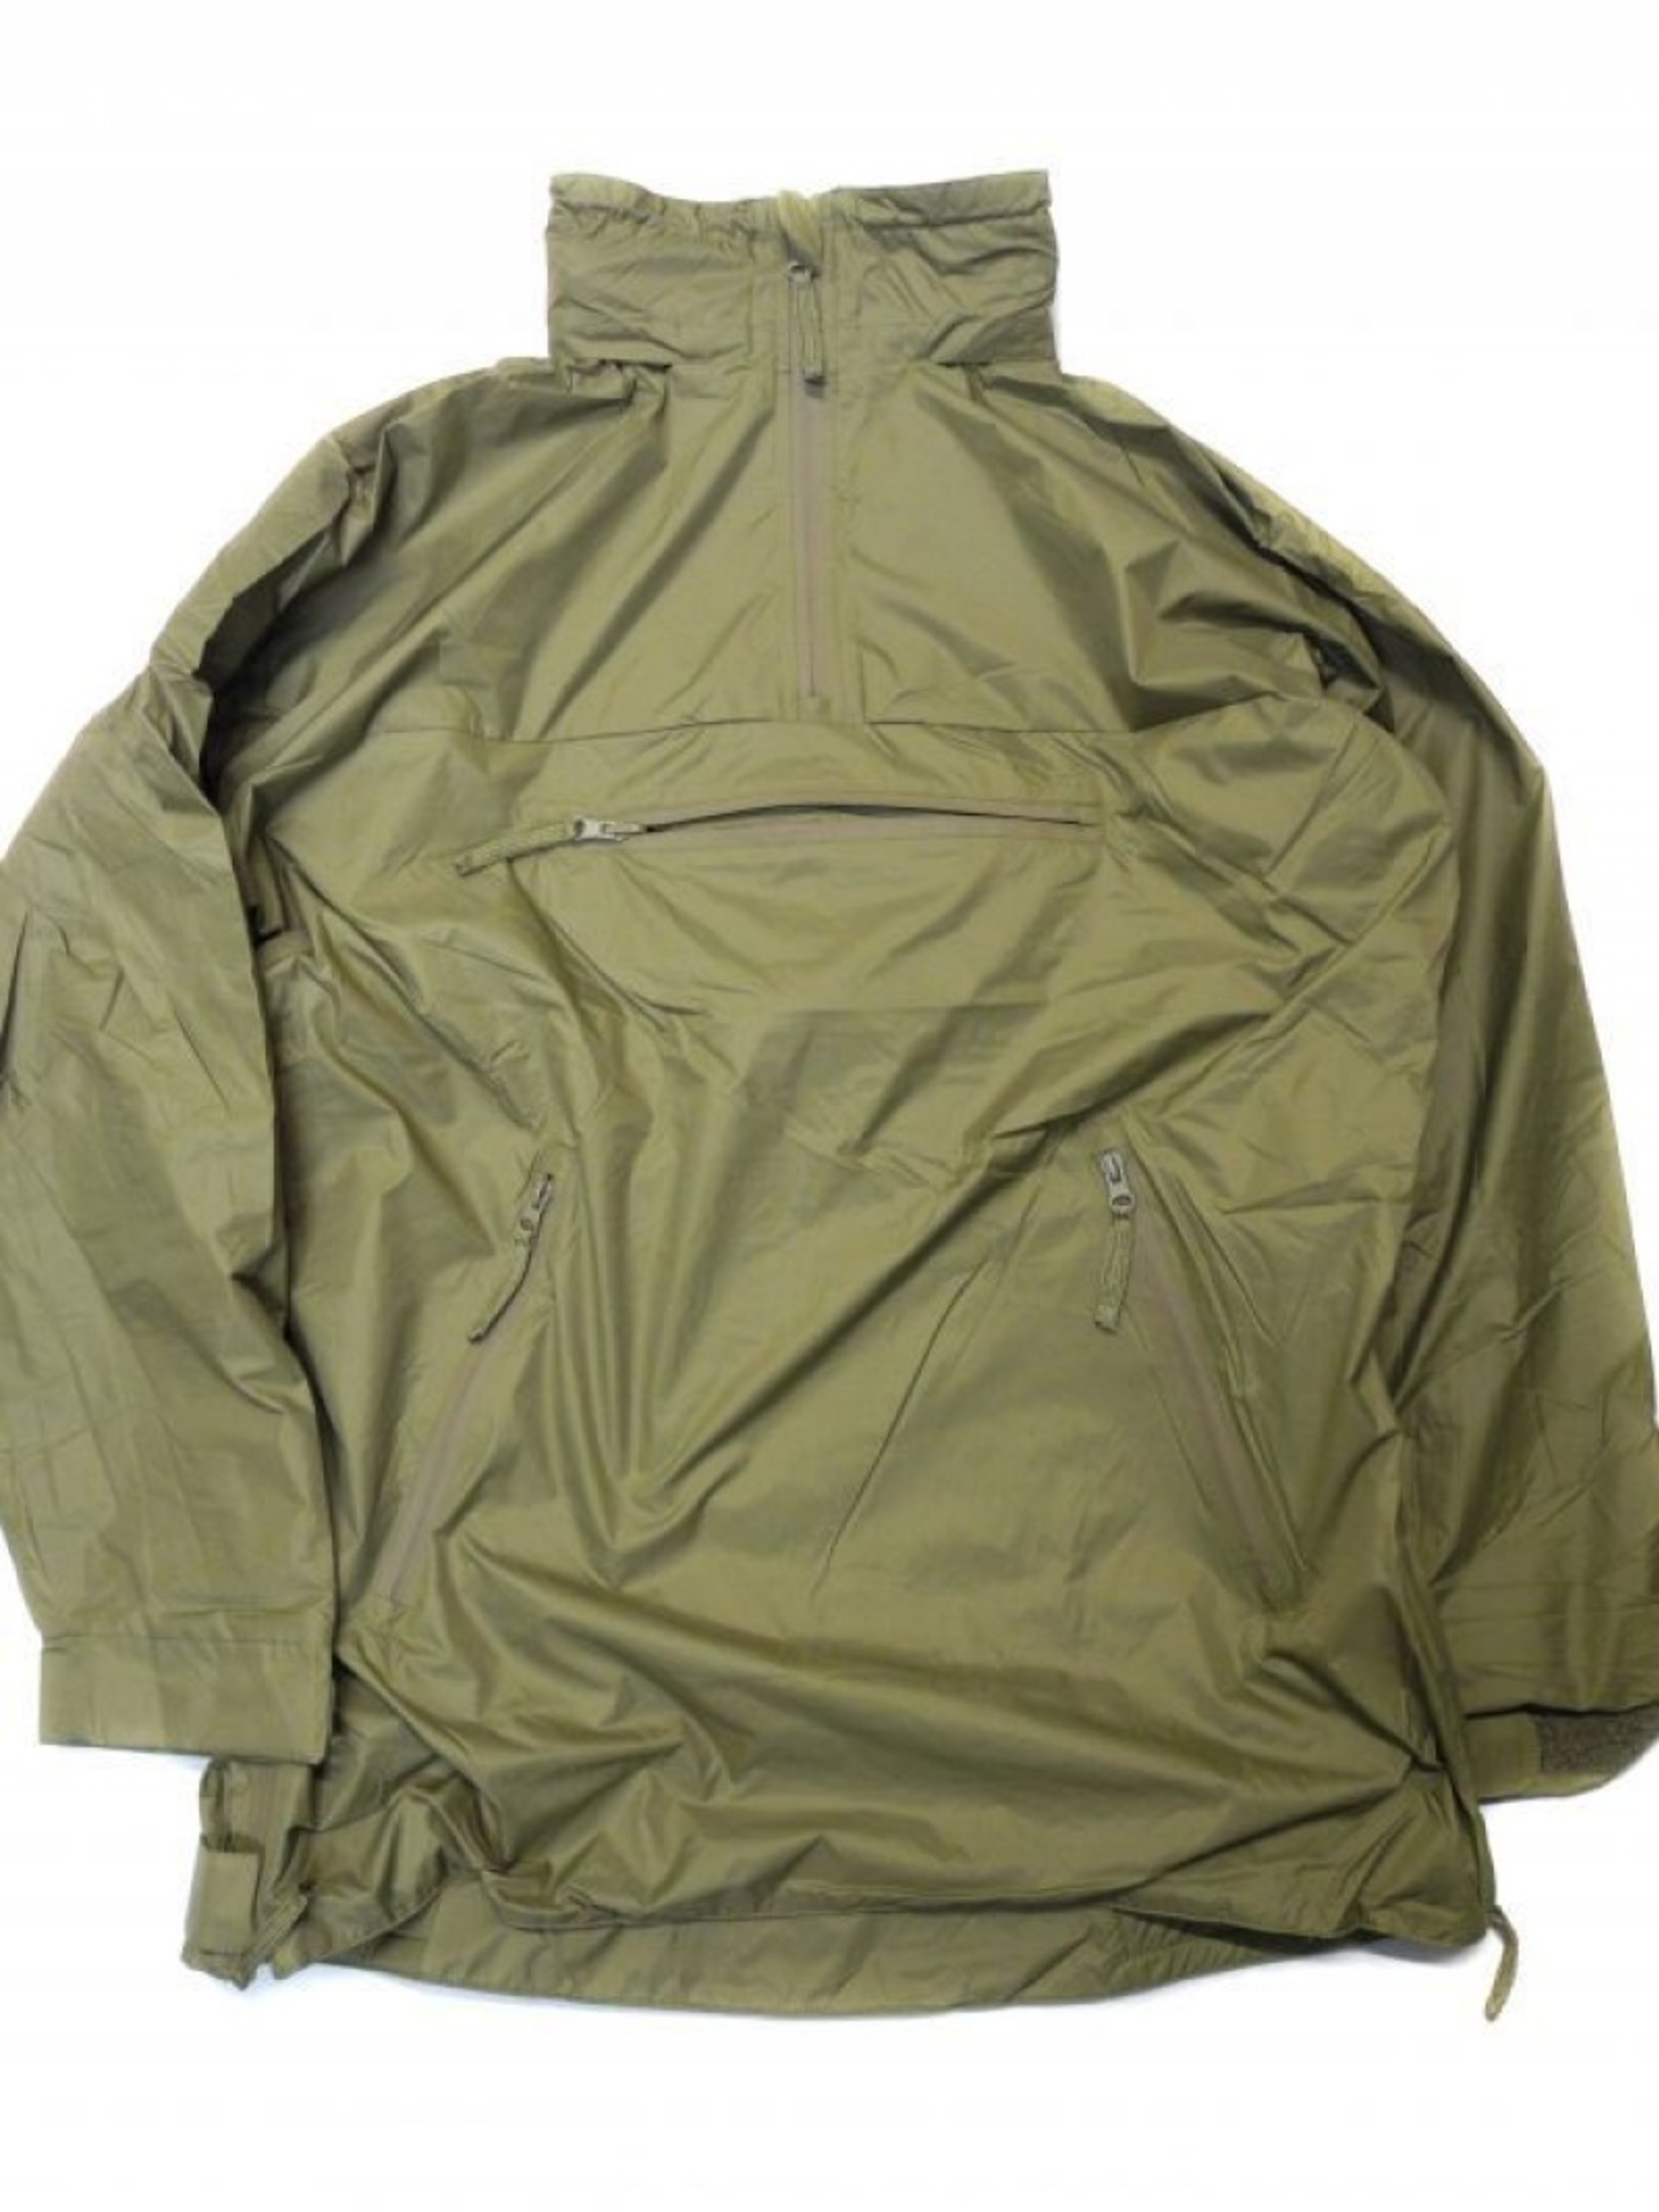 DEAD STOCK BRITISH ARMY PCS THERMAL SMOCK